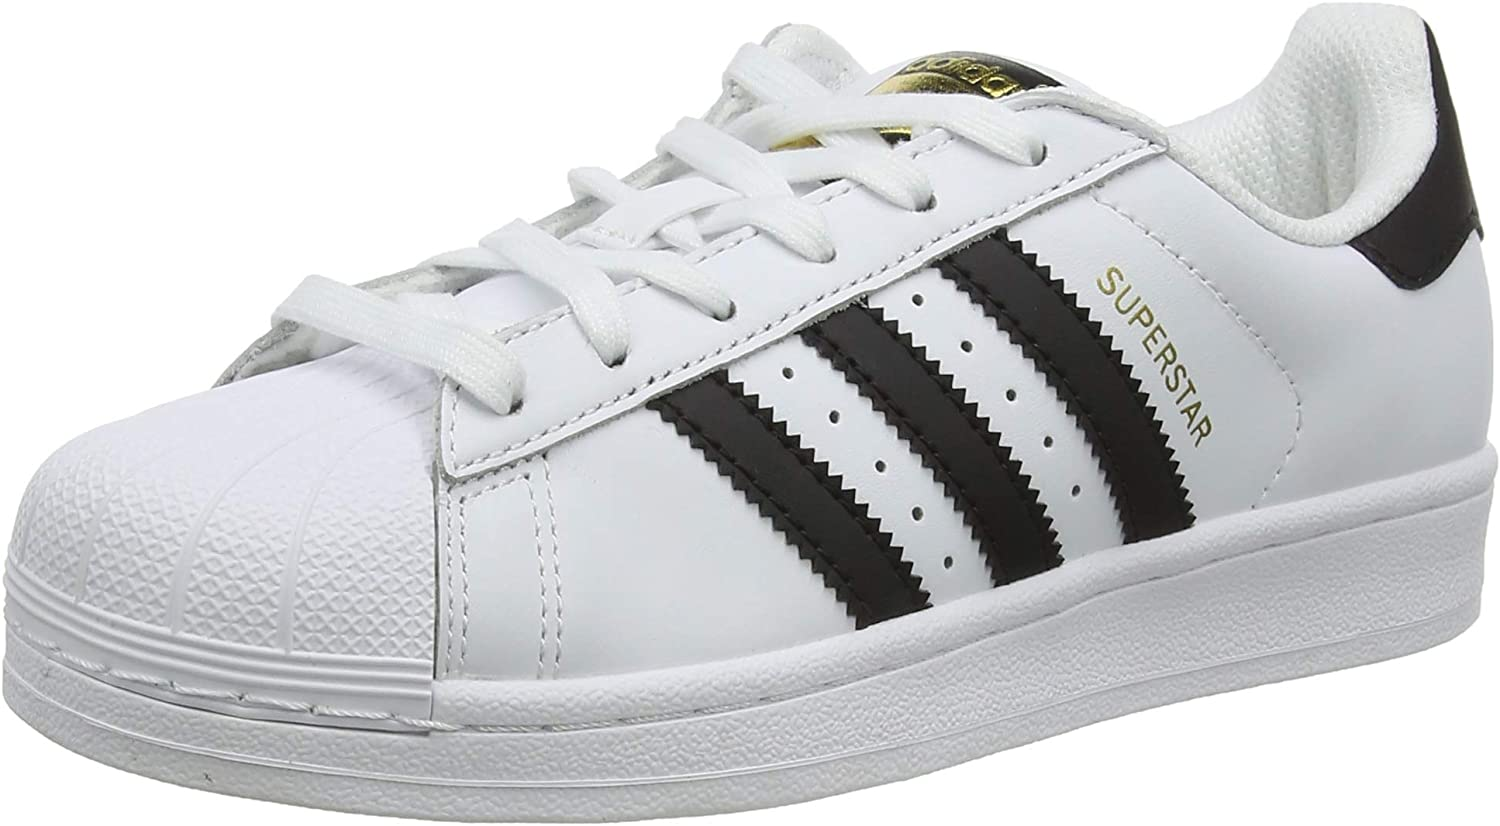 Adidas Superstar Amazon.com | adidas Originals Men's Super Star Sneaker | Shoes